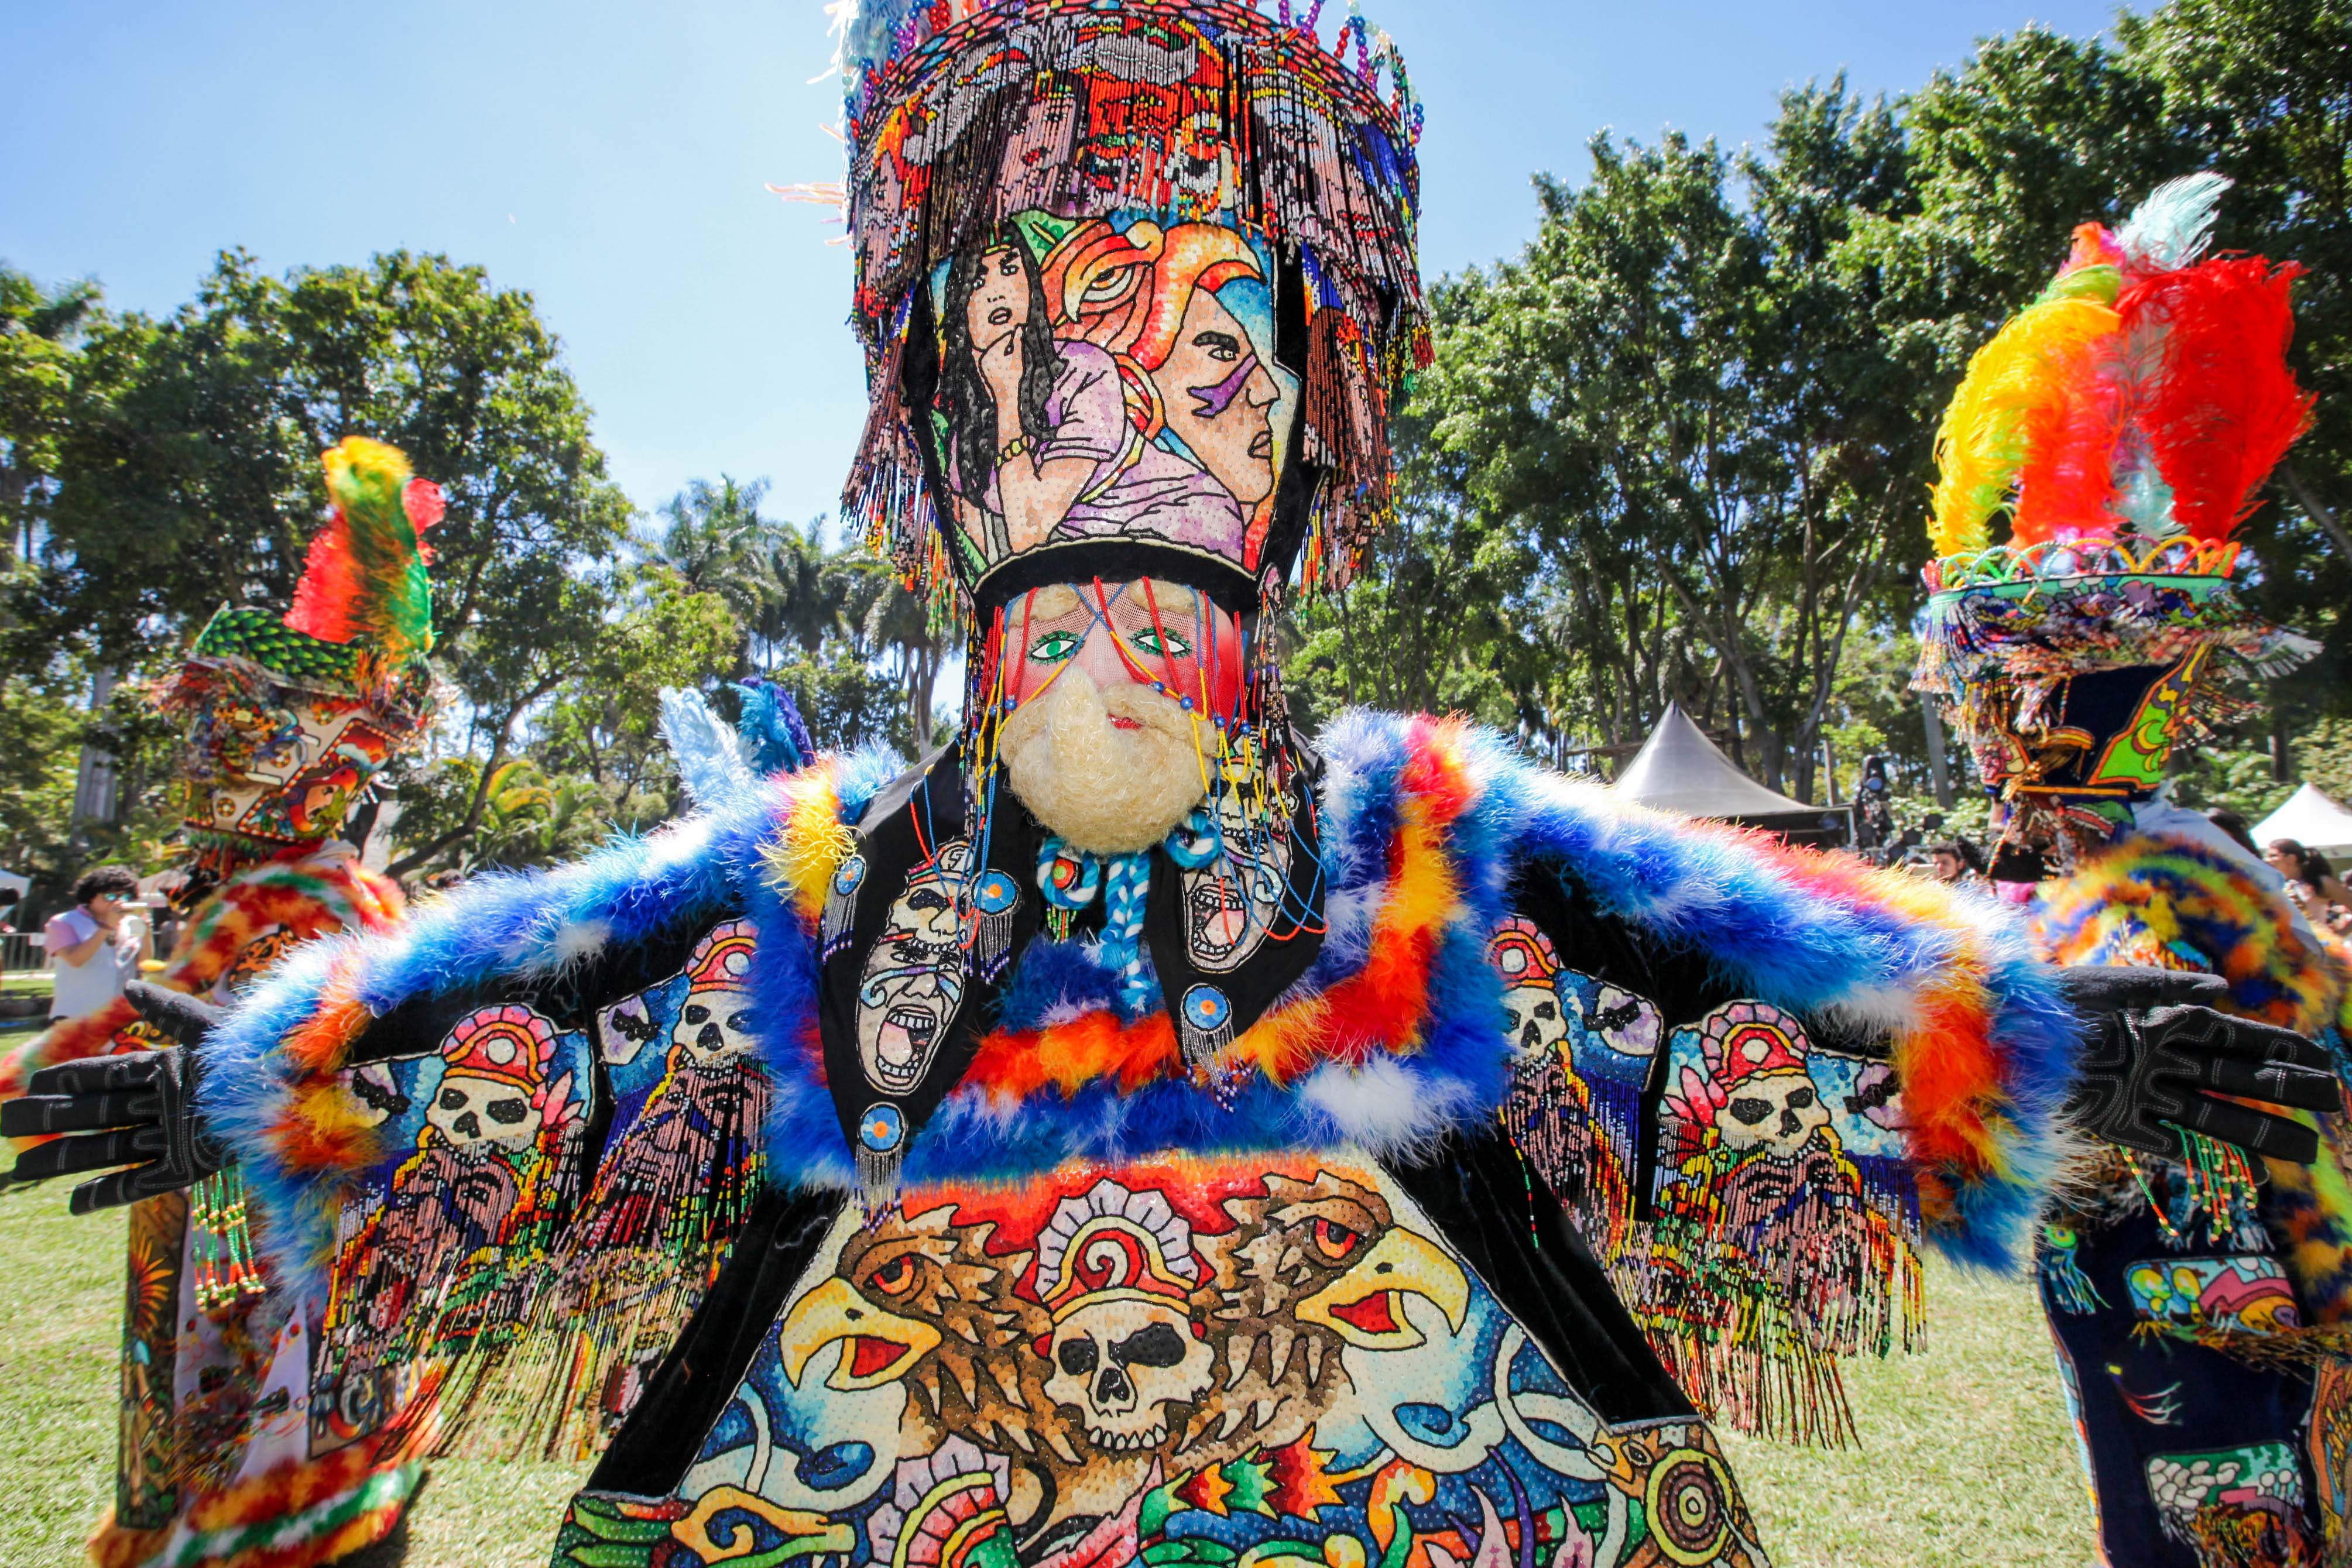 25 Photos From Bahidorá, the Mexican Music Festival Where Idyll Met Controversy